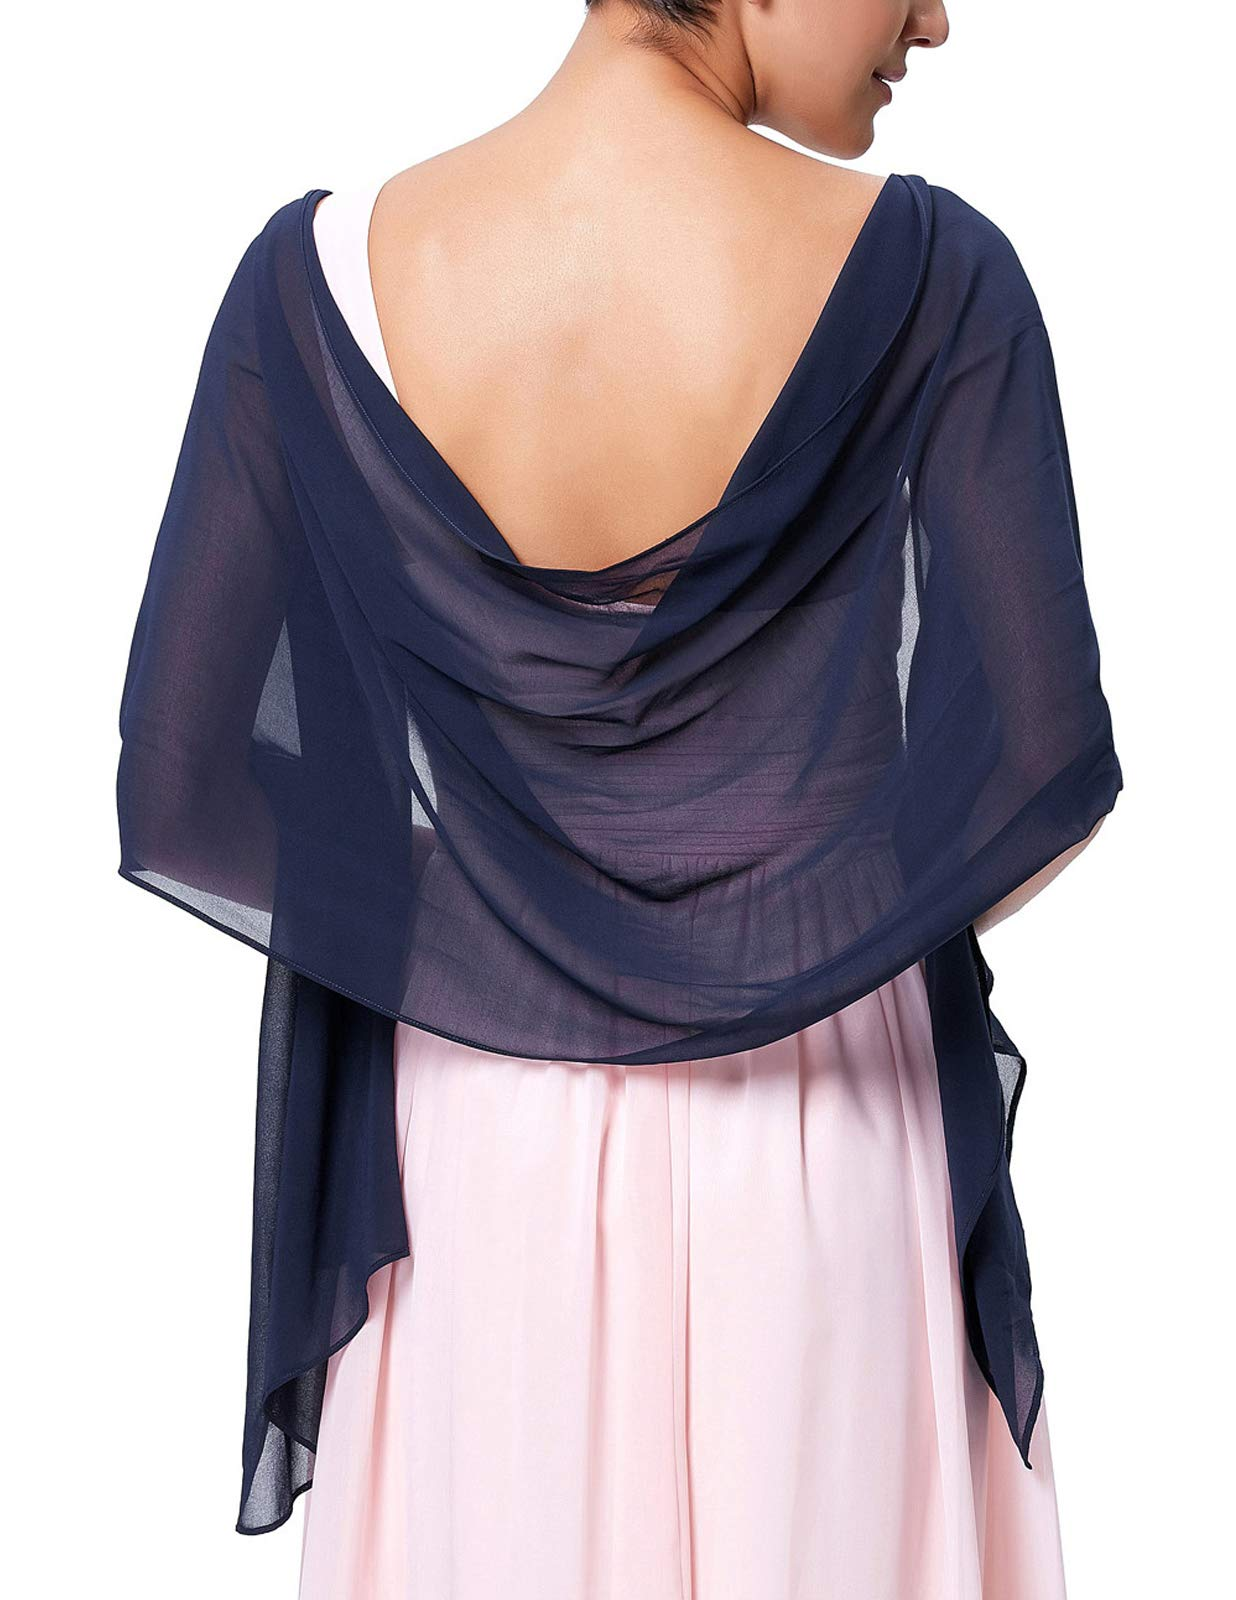 Kate Kasin Women Soft Chiffon Pashmina Scarf Shawls and Wraps for Bridesmaid Wedding Formal Party Evening Dress